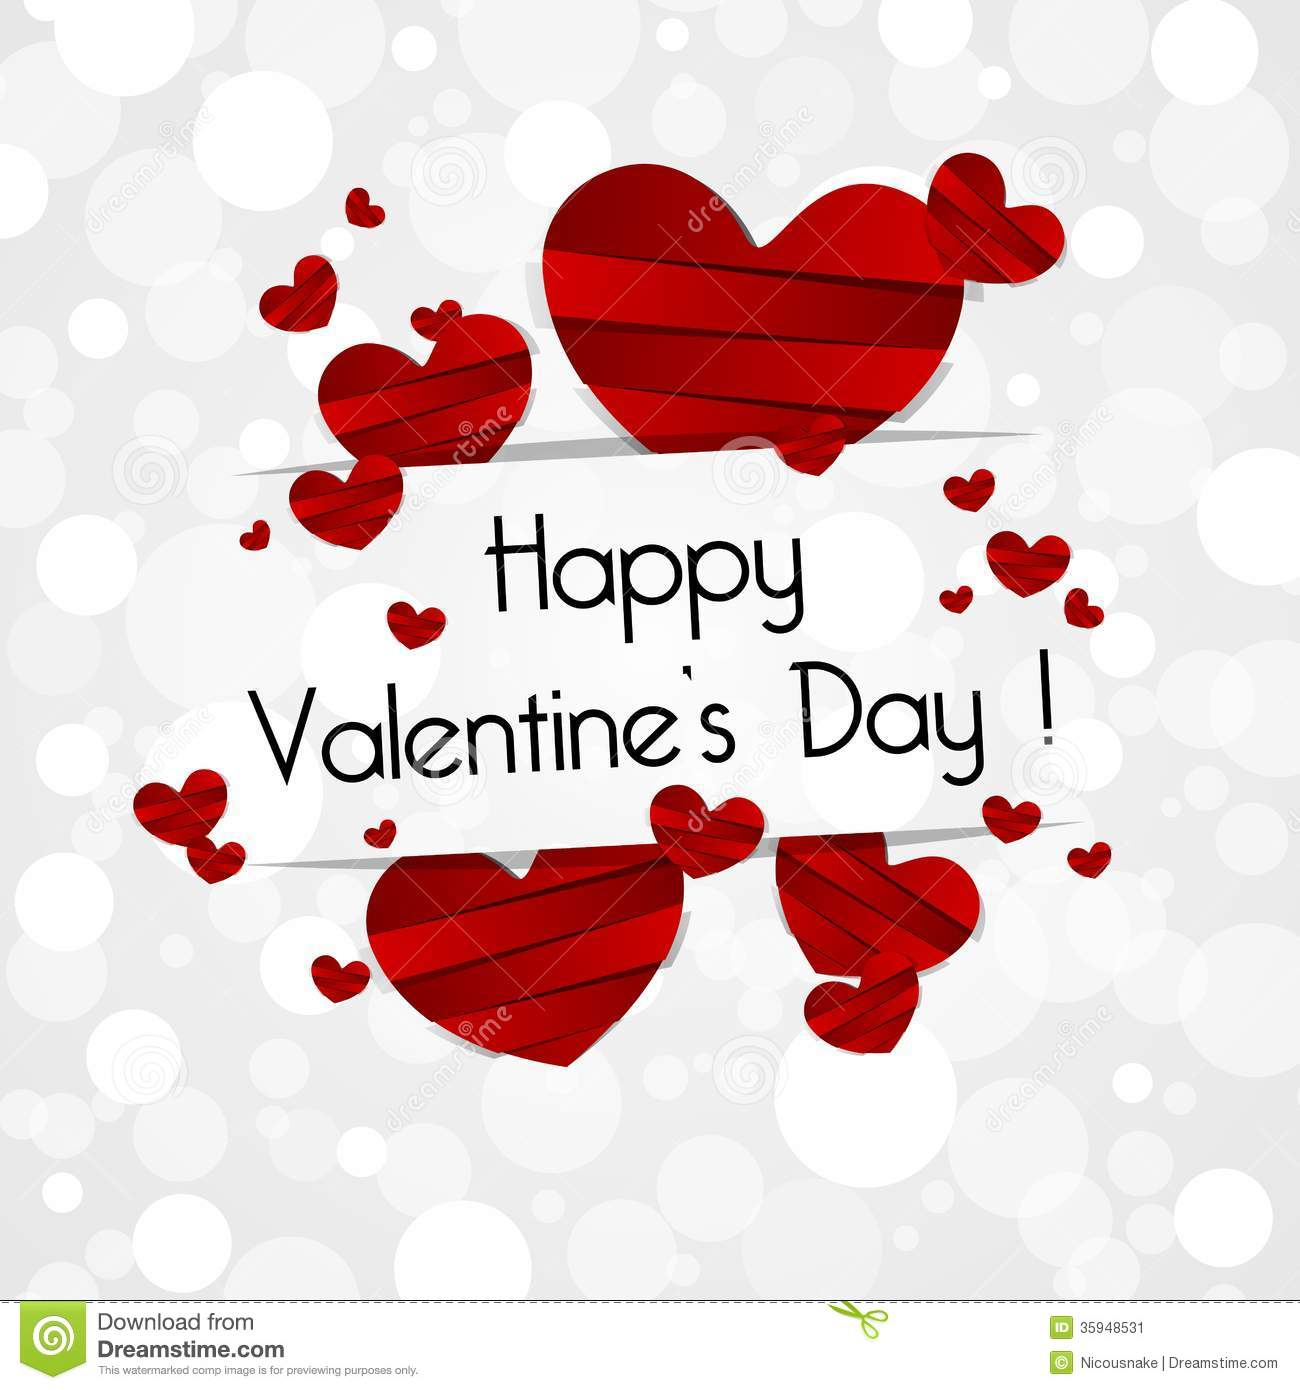 Happy Valentines Day Card Image Image 35948531 – Happy Valentines Day Cards